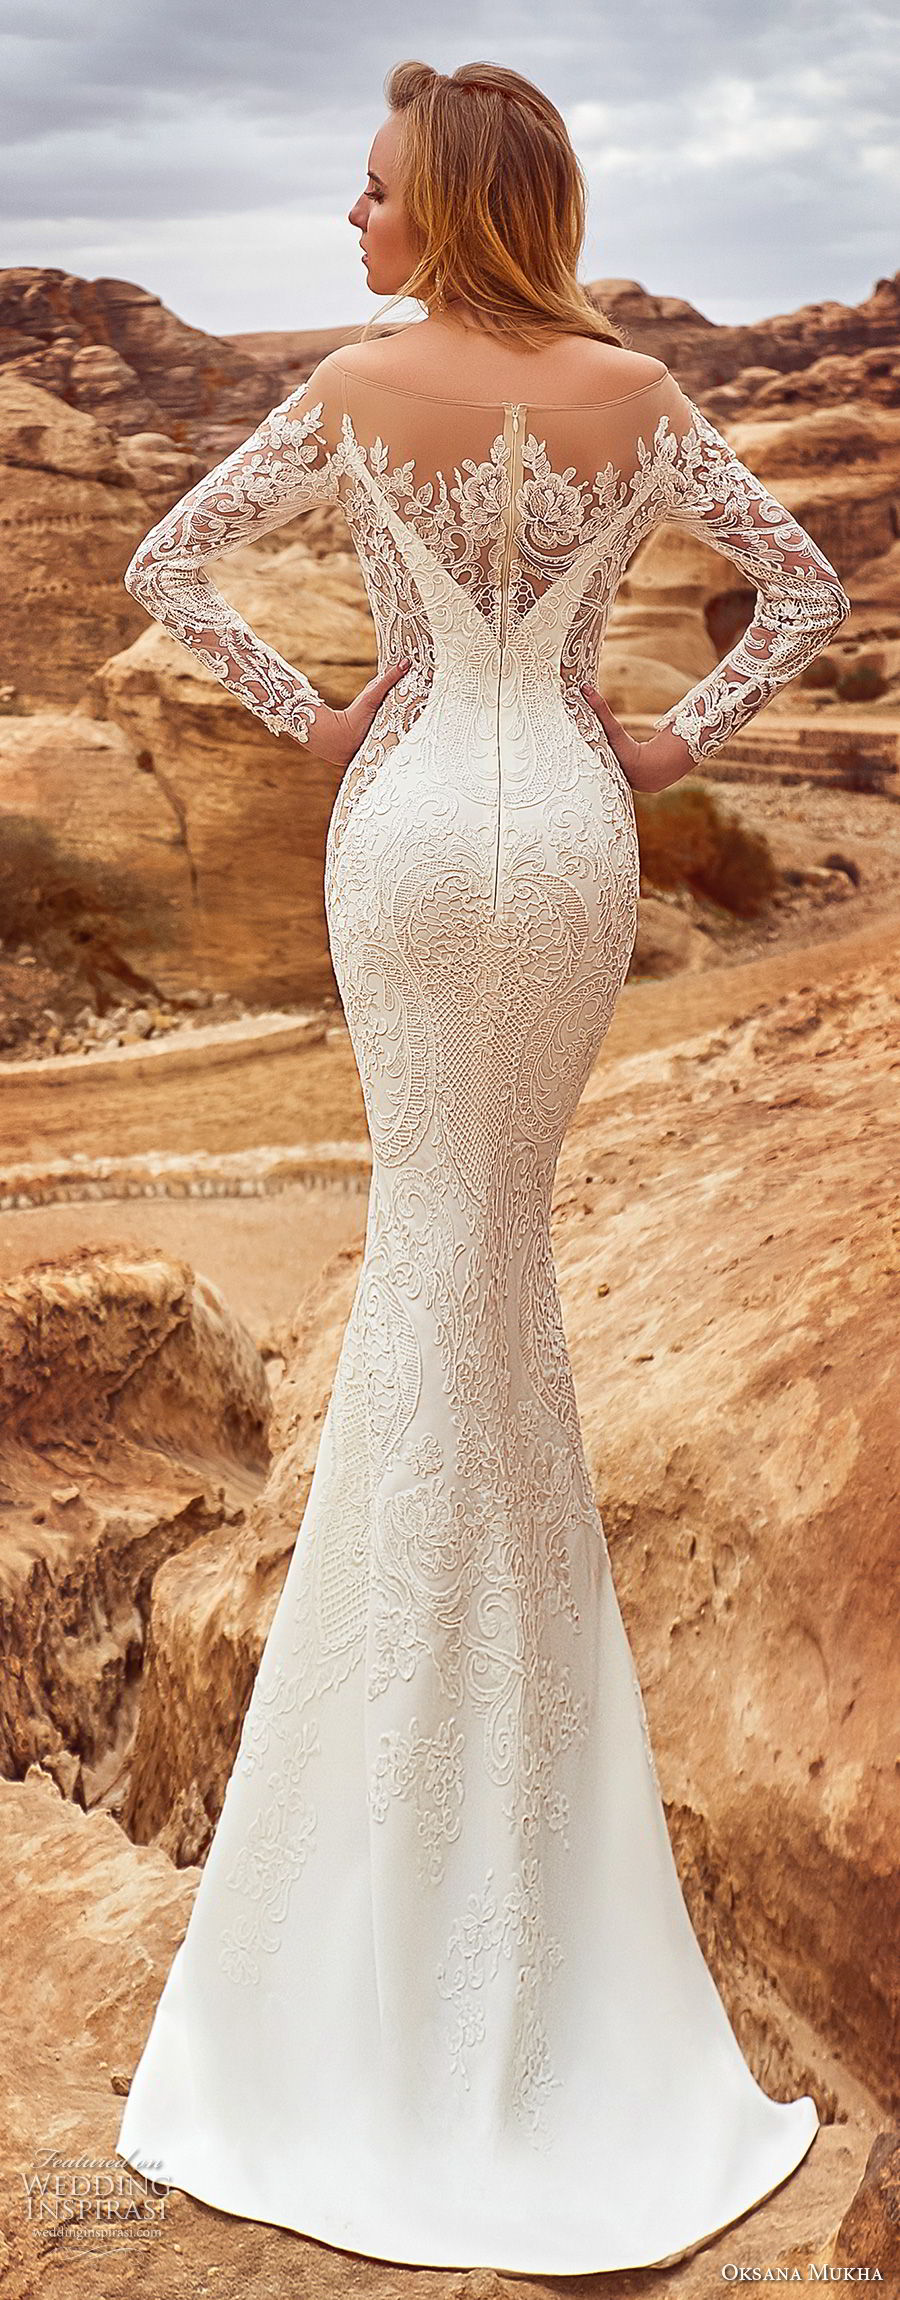 oksana mukha 2018 bridal long sleeves off the shoulder sweetheart neckline full embellishment elegant glamorous fit and flare wedding dress sheer lace back sweep train (armadea) bv